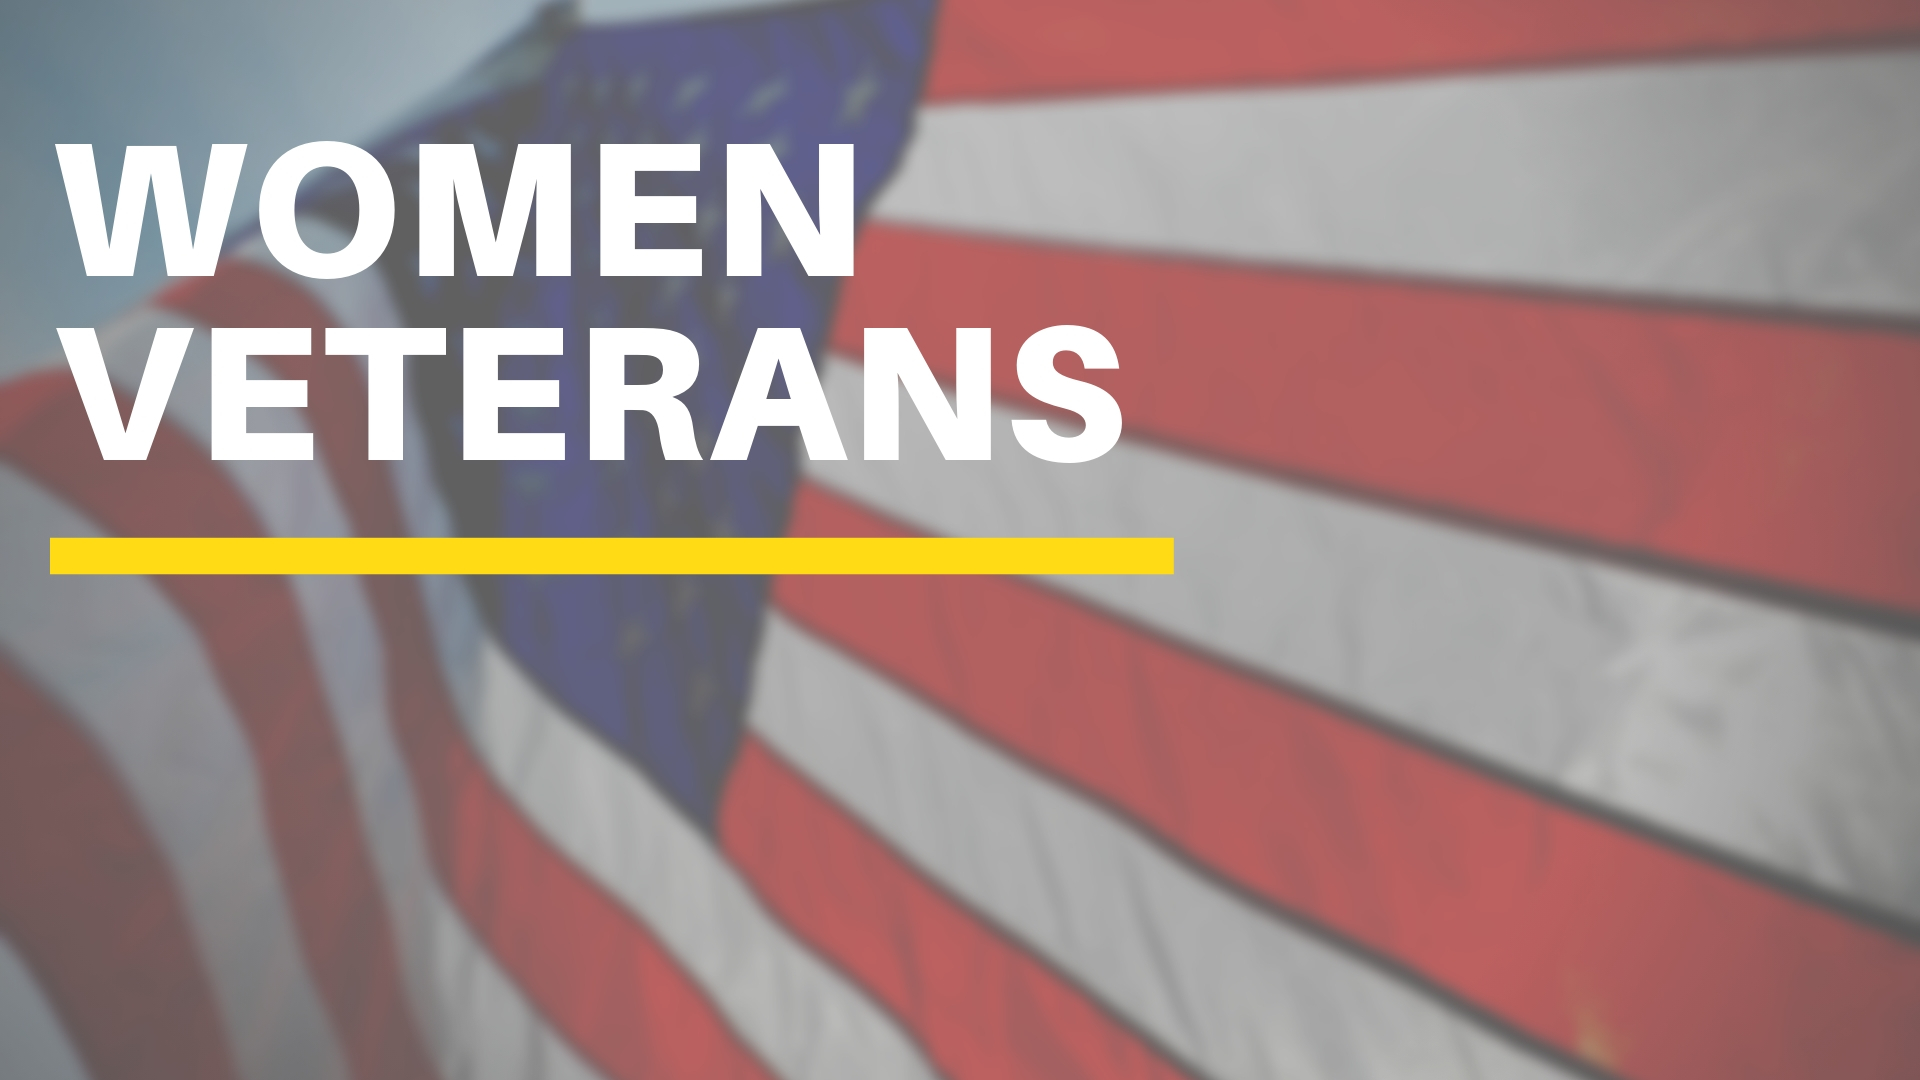 Women Veterans